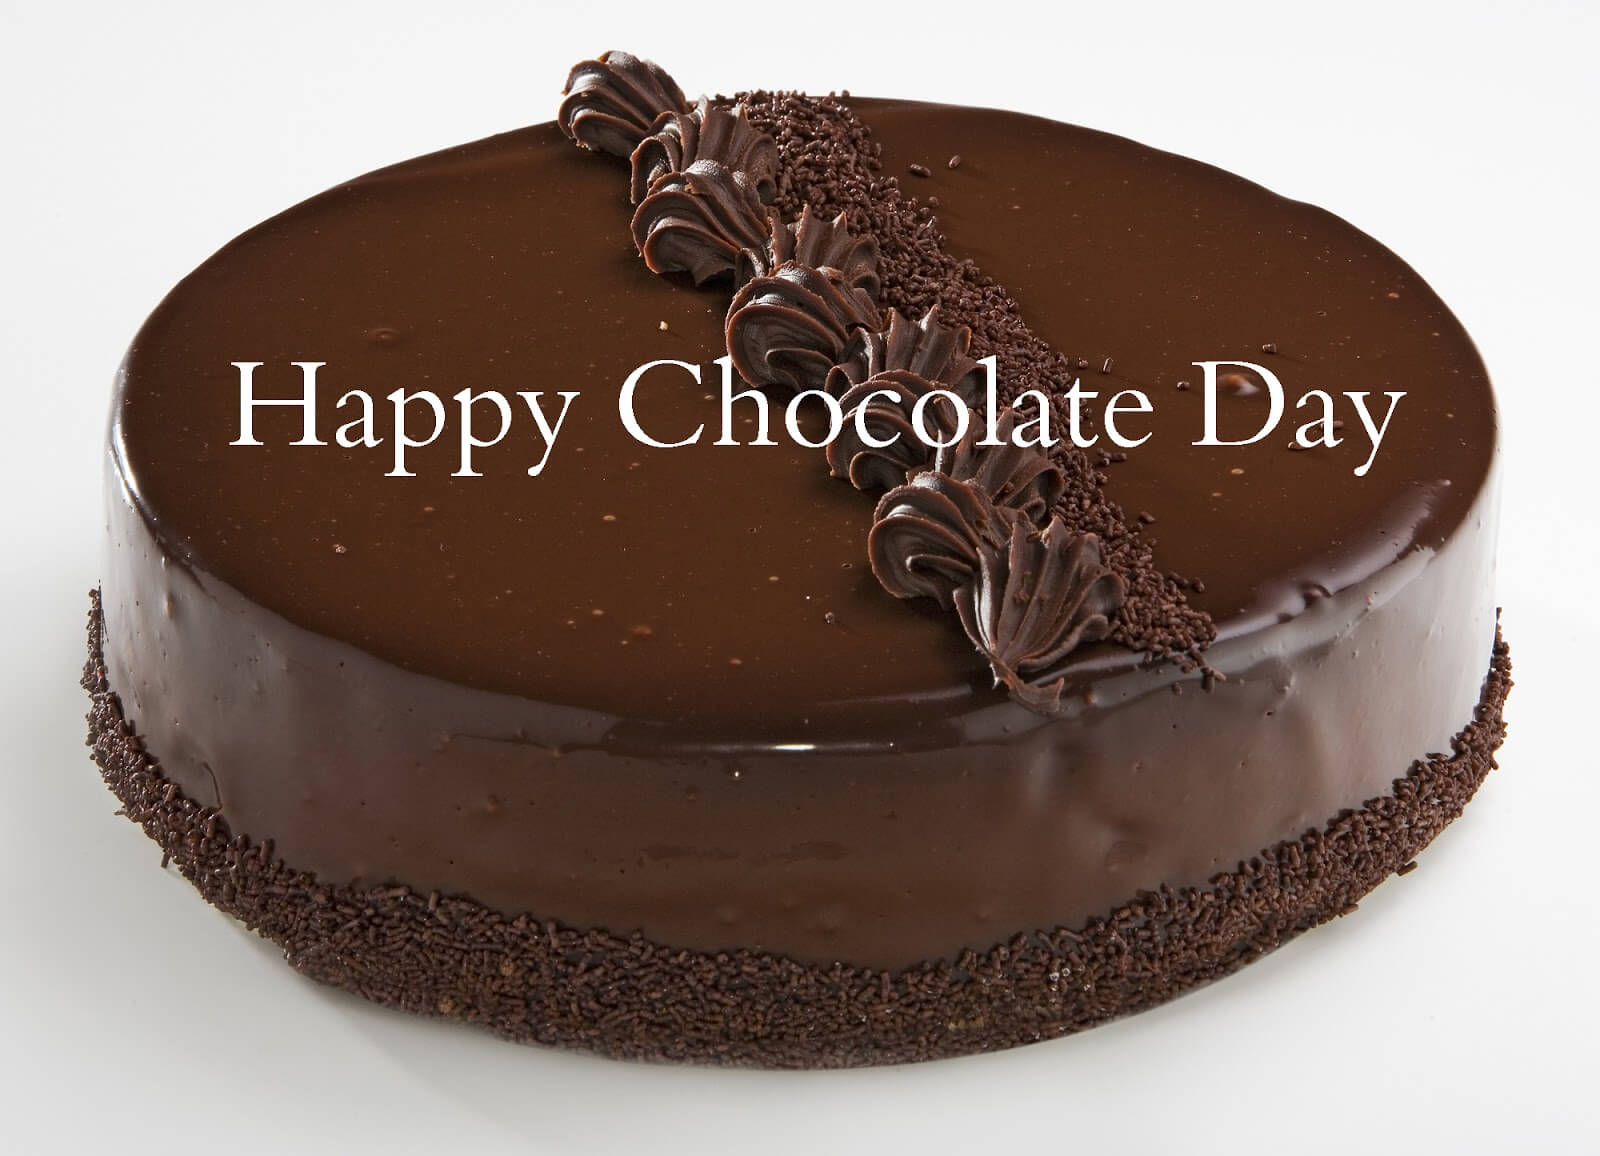 happy chocolate day cake for valentine love graphic image facebook whatsapp hd wallpaper